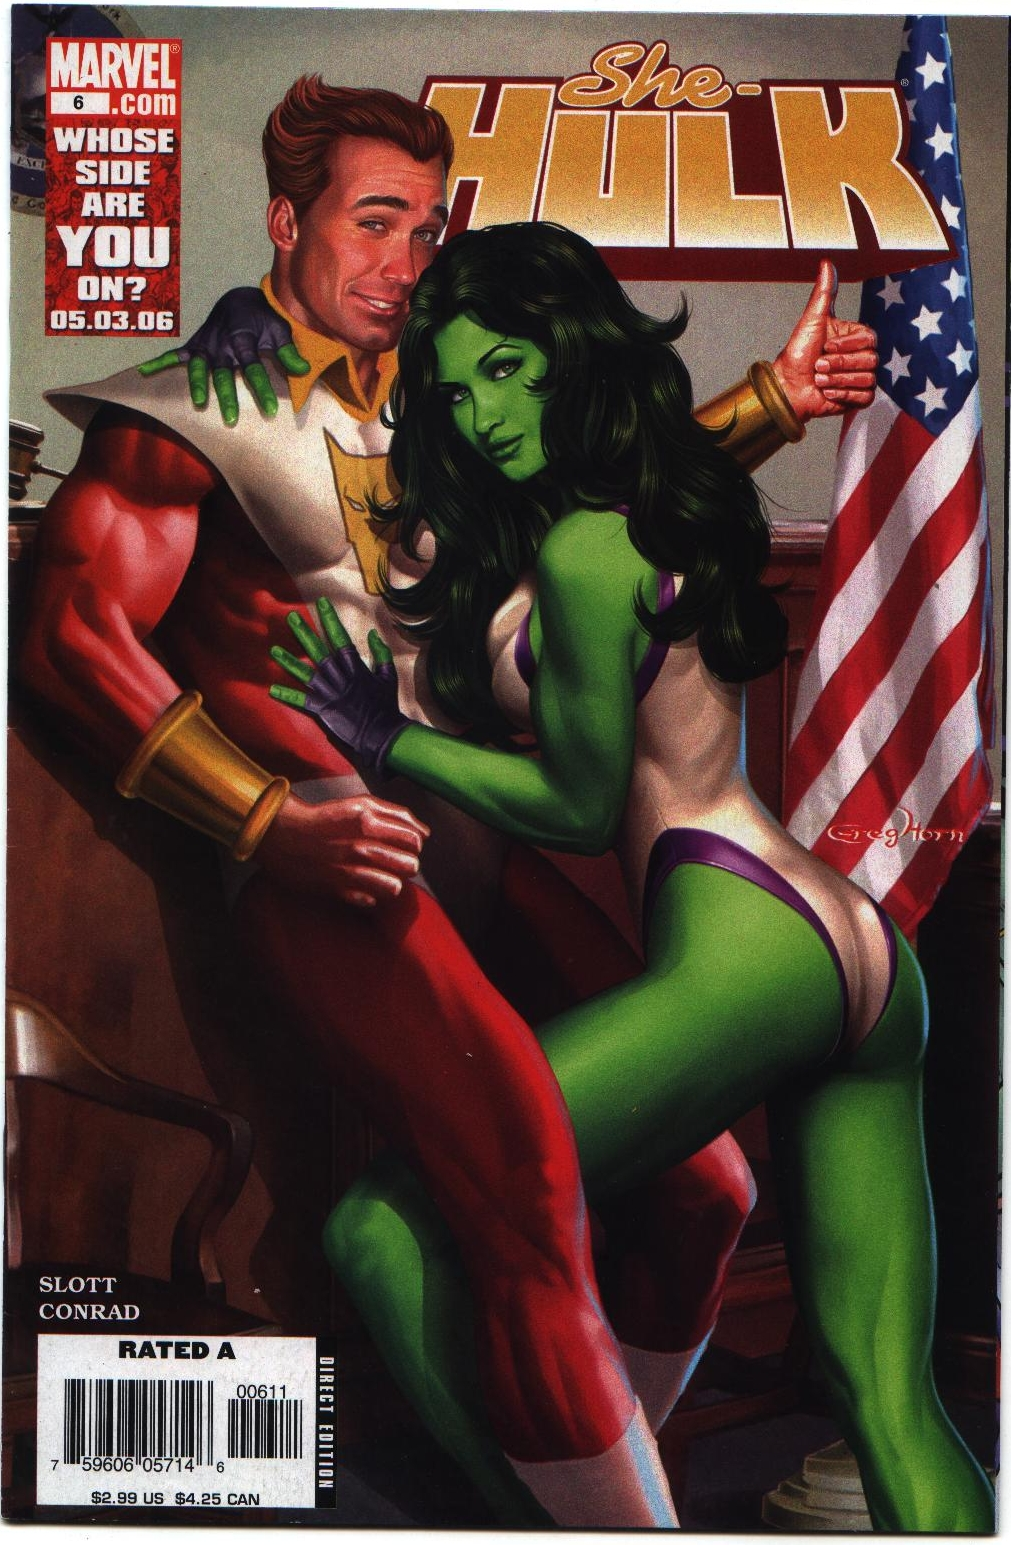 She hulk dating